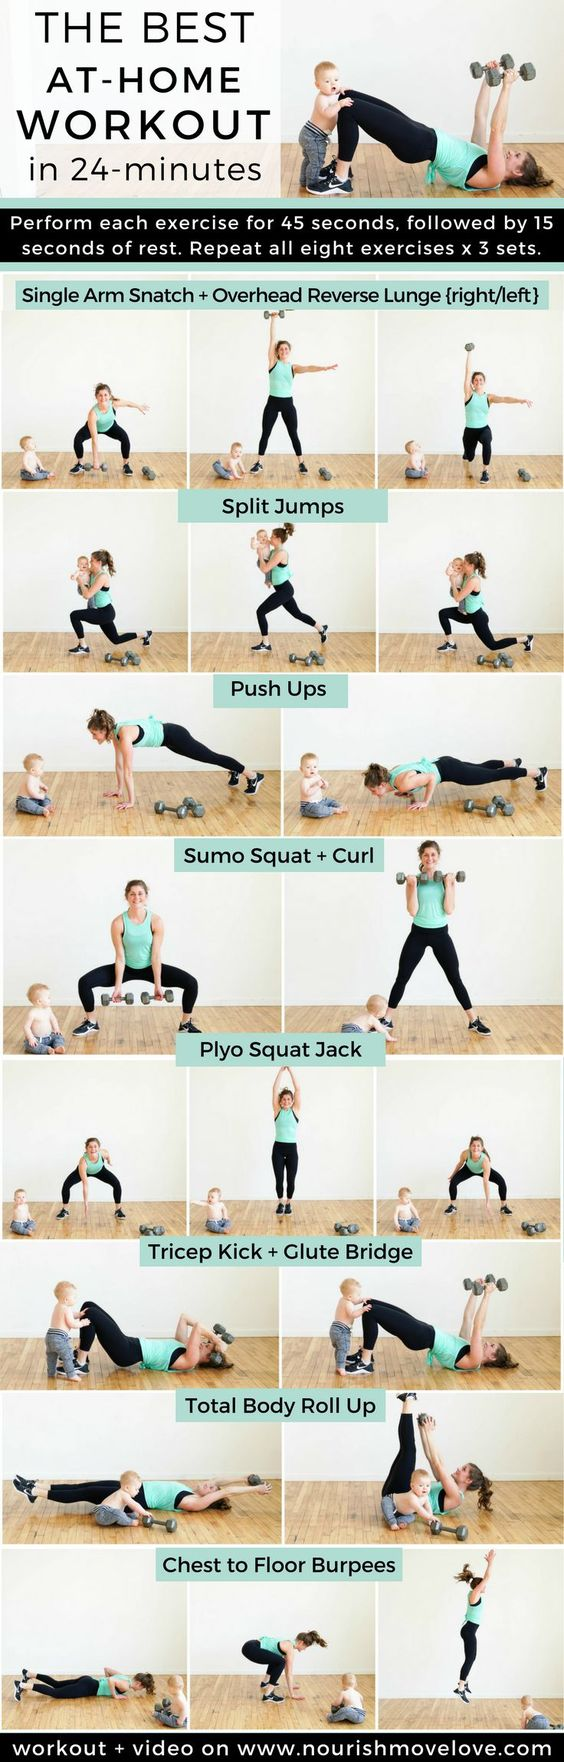 best at-home workout strength training for women